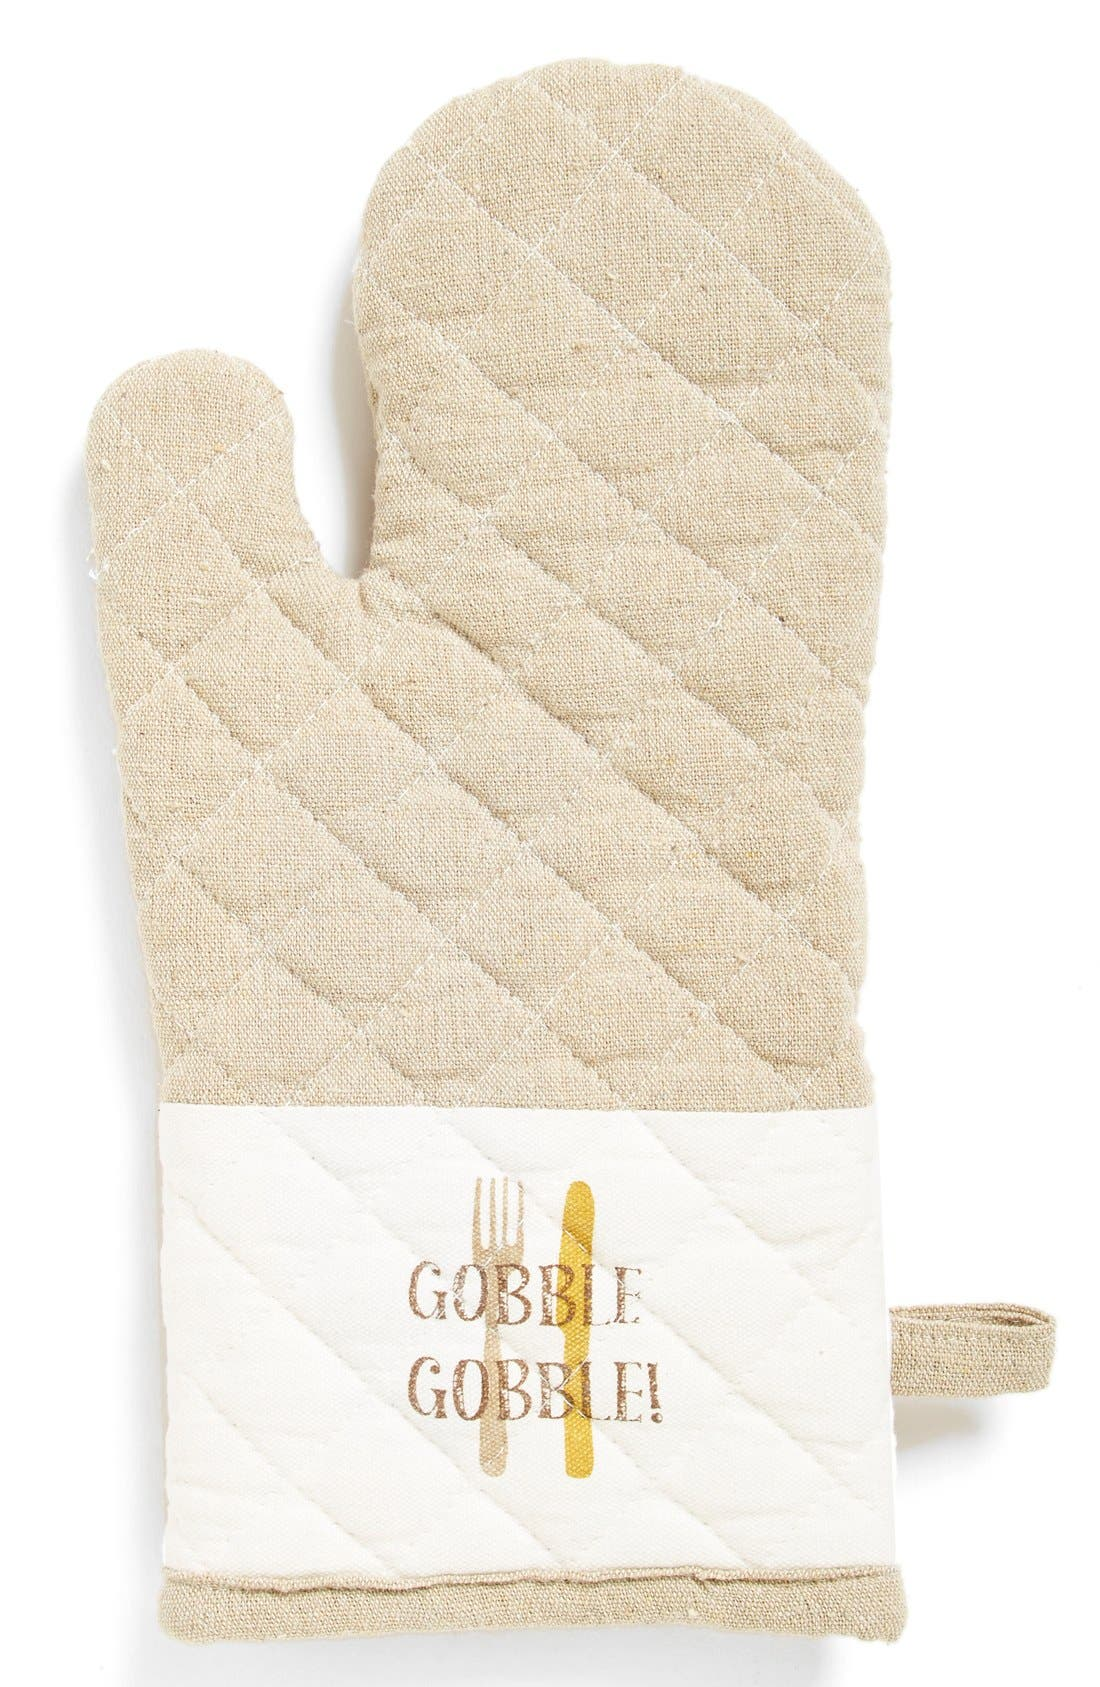 'Gobble Gobble!' Quilted Oven Mitt,                         Main,                         color, Beige